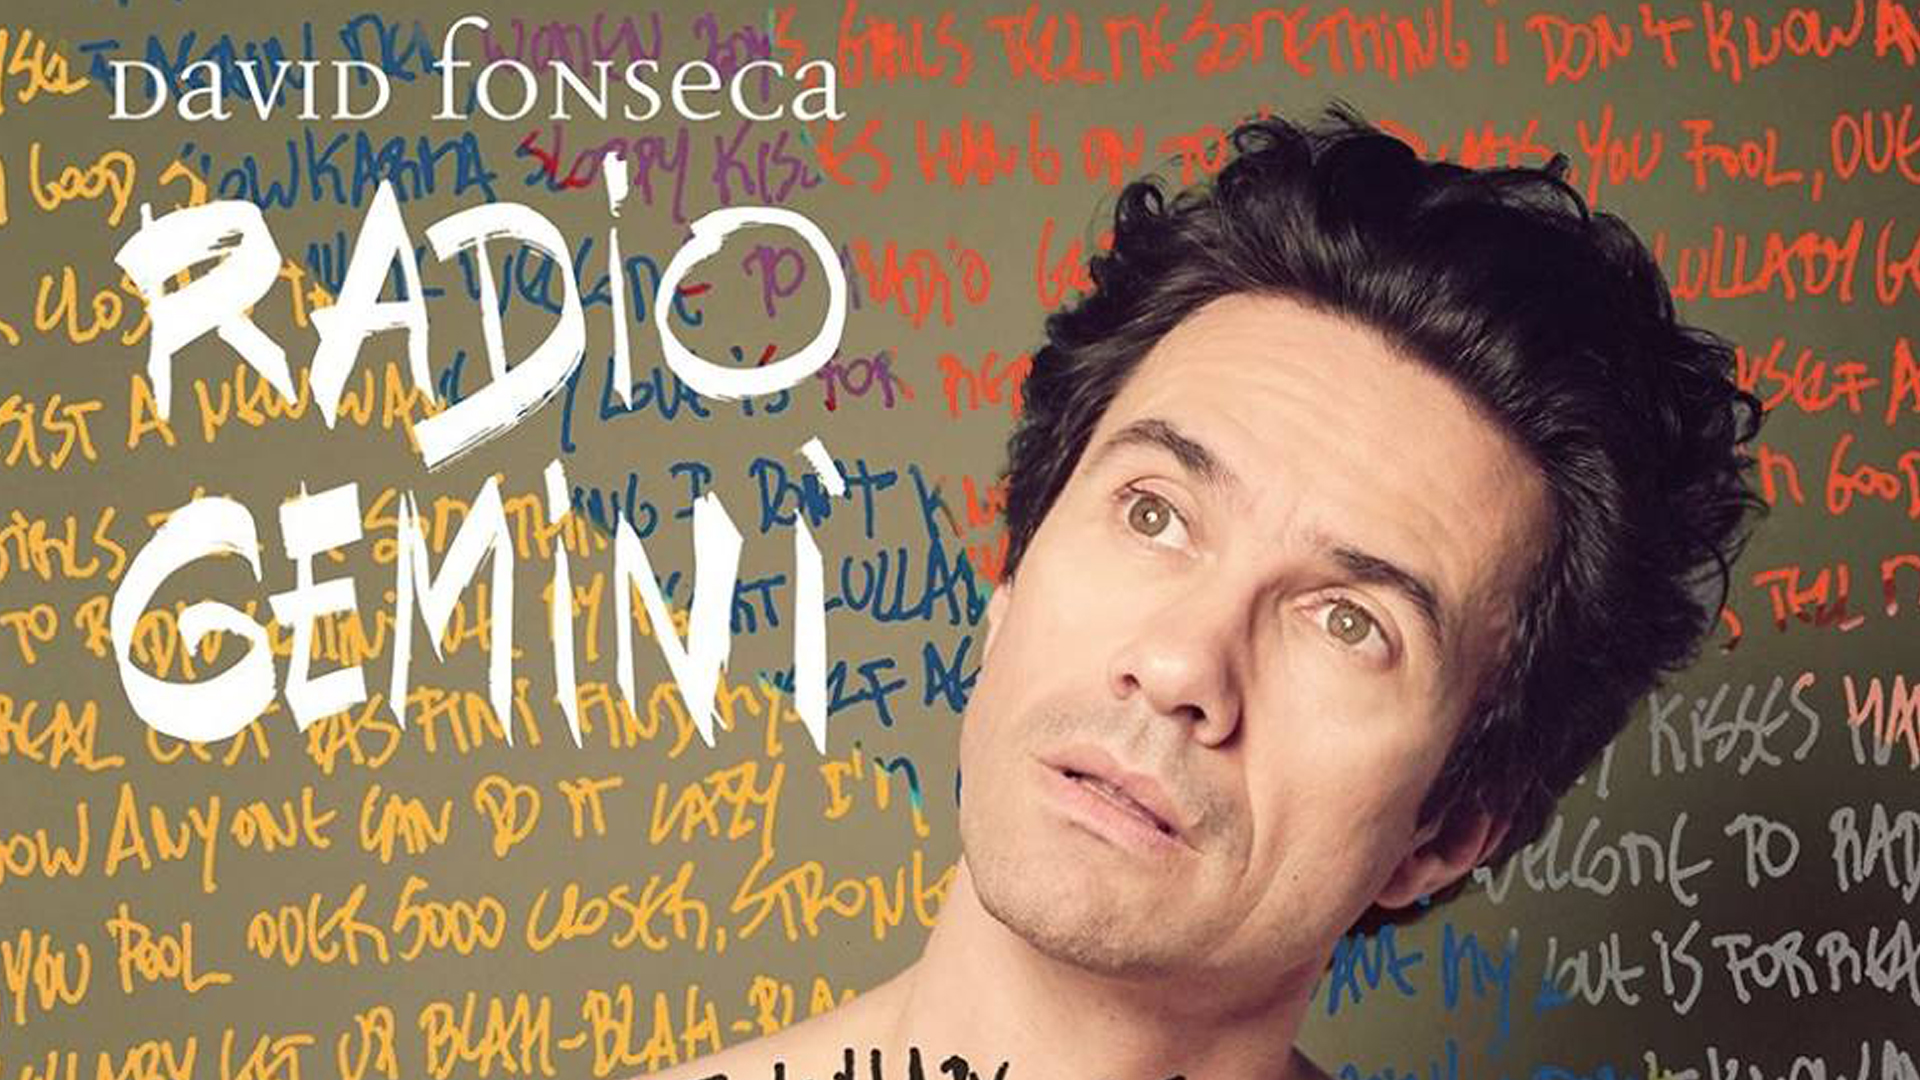 david-fonseca-estoril-radio-gemini